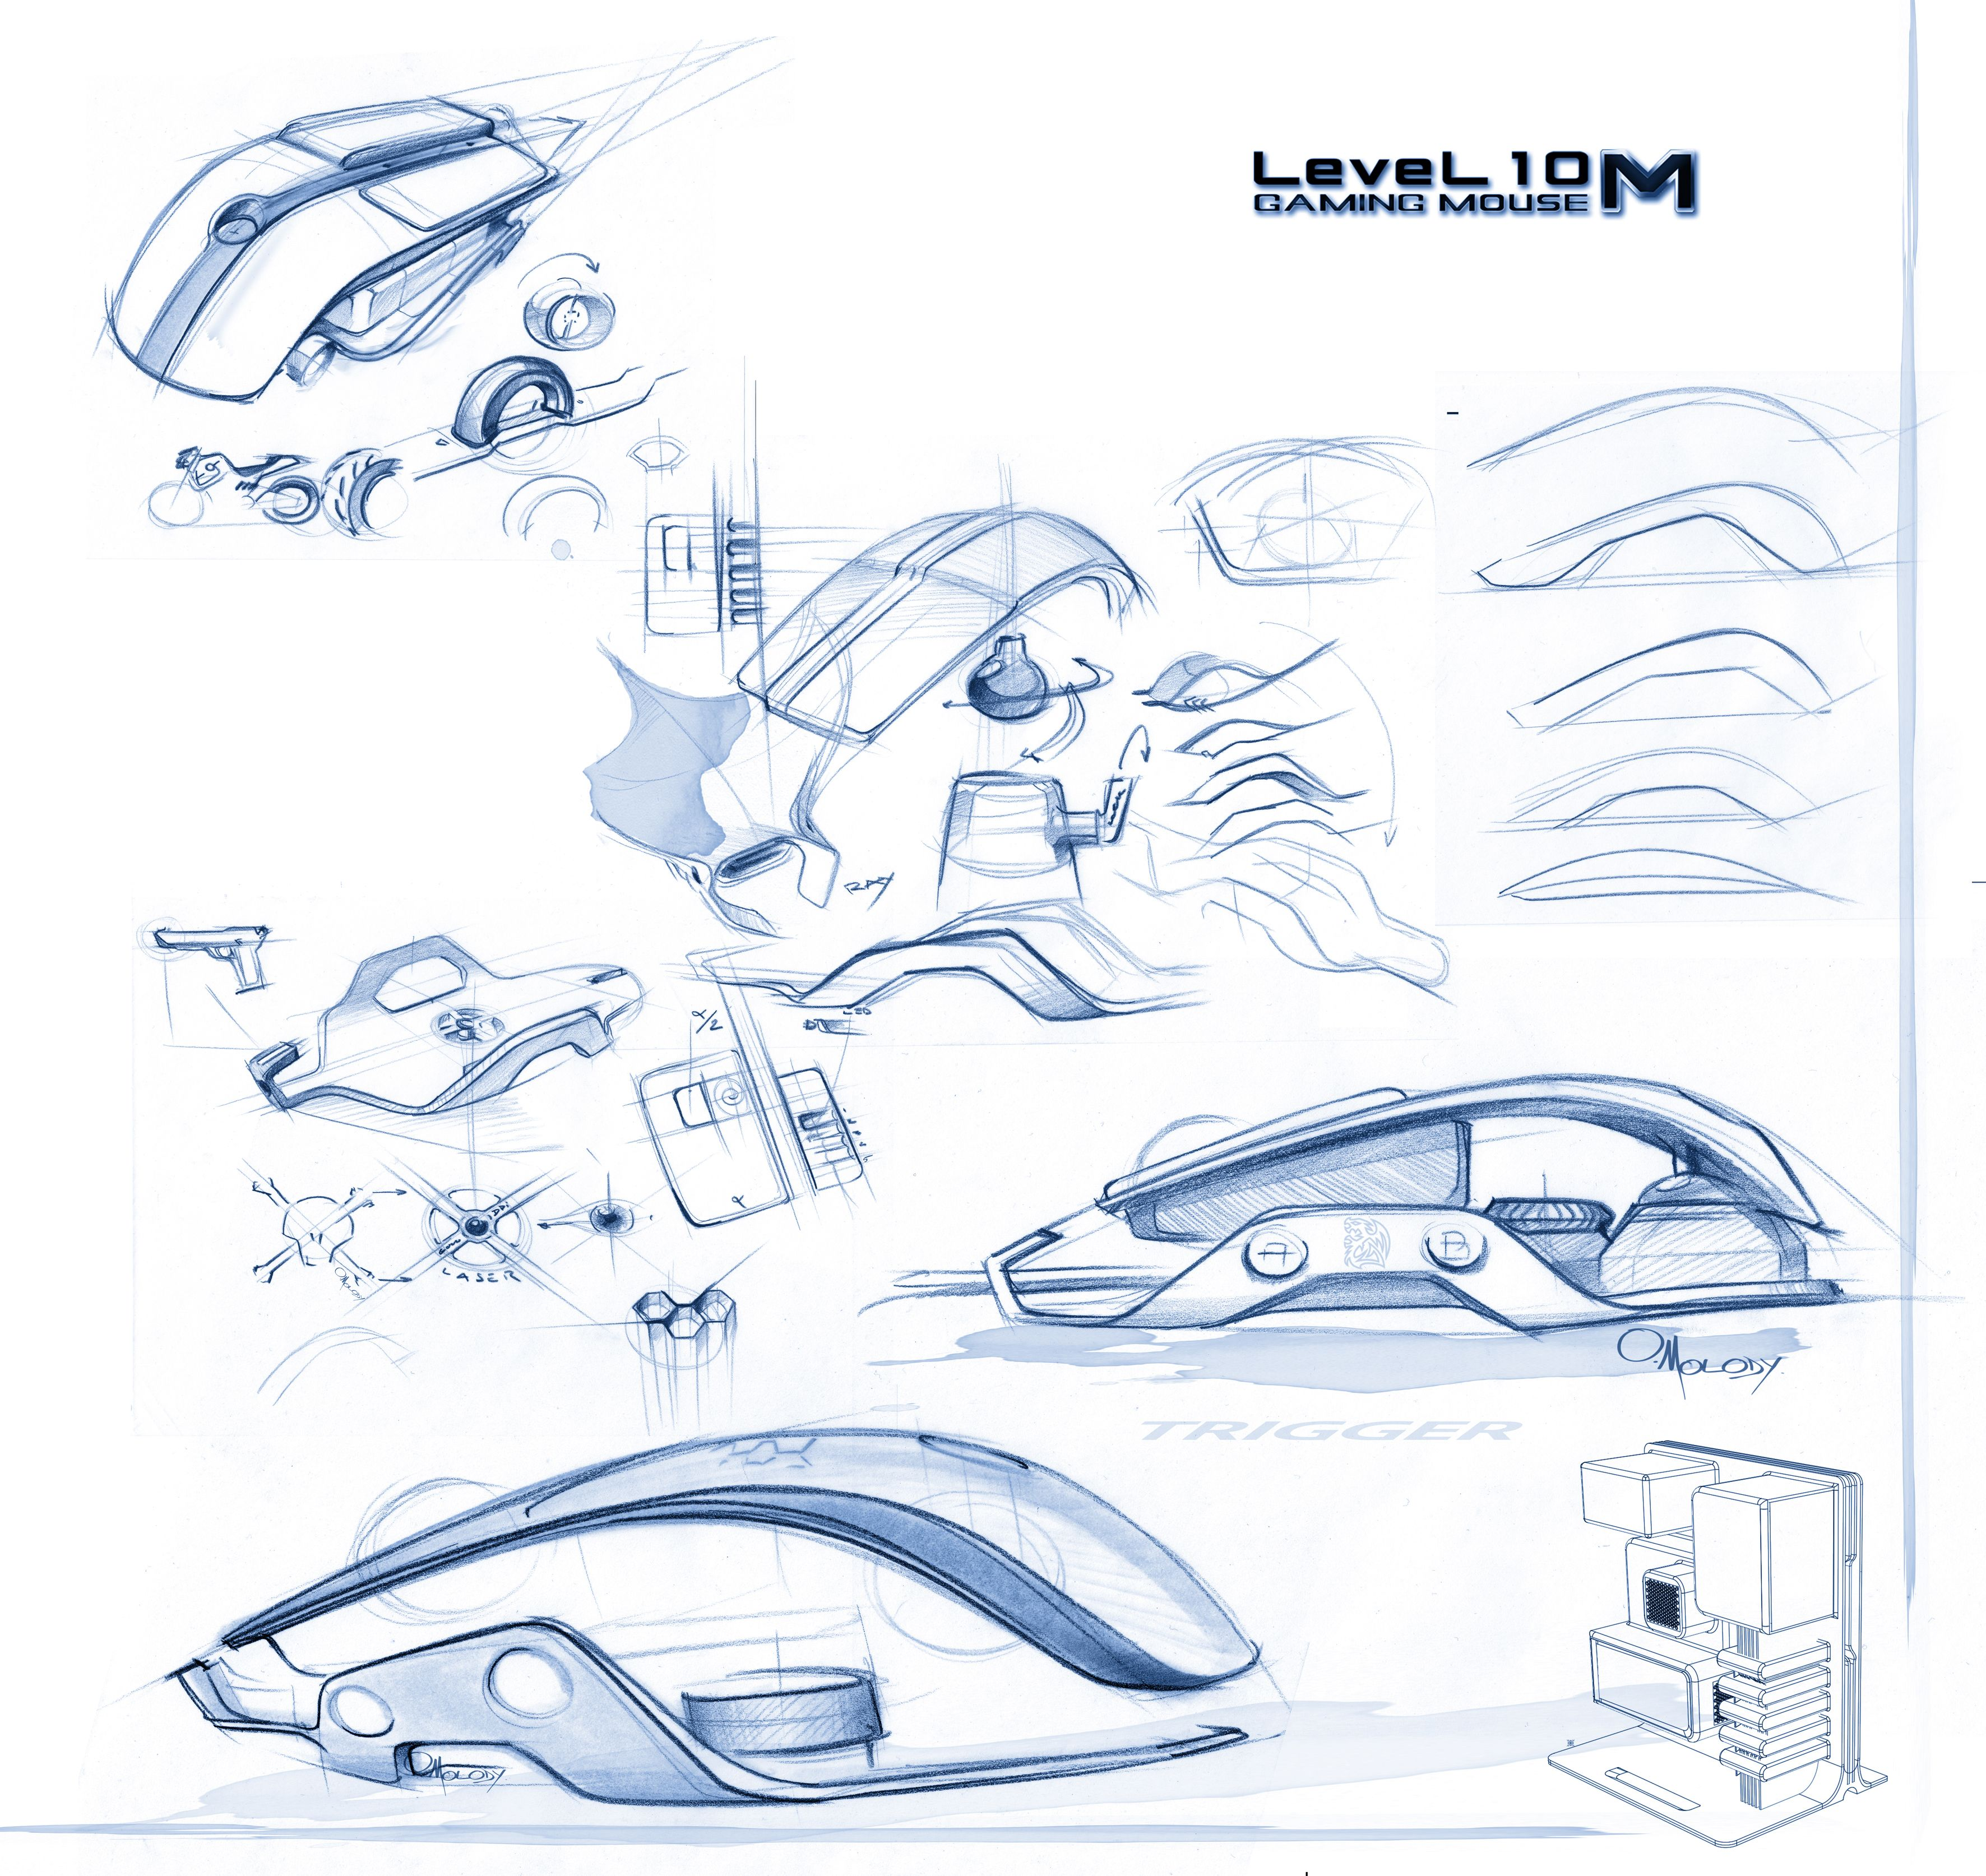 Design Sketches, Level 10 Gaming Mouse | O. Molody.